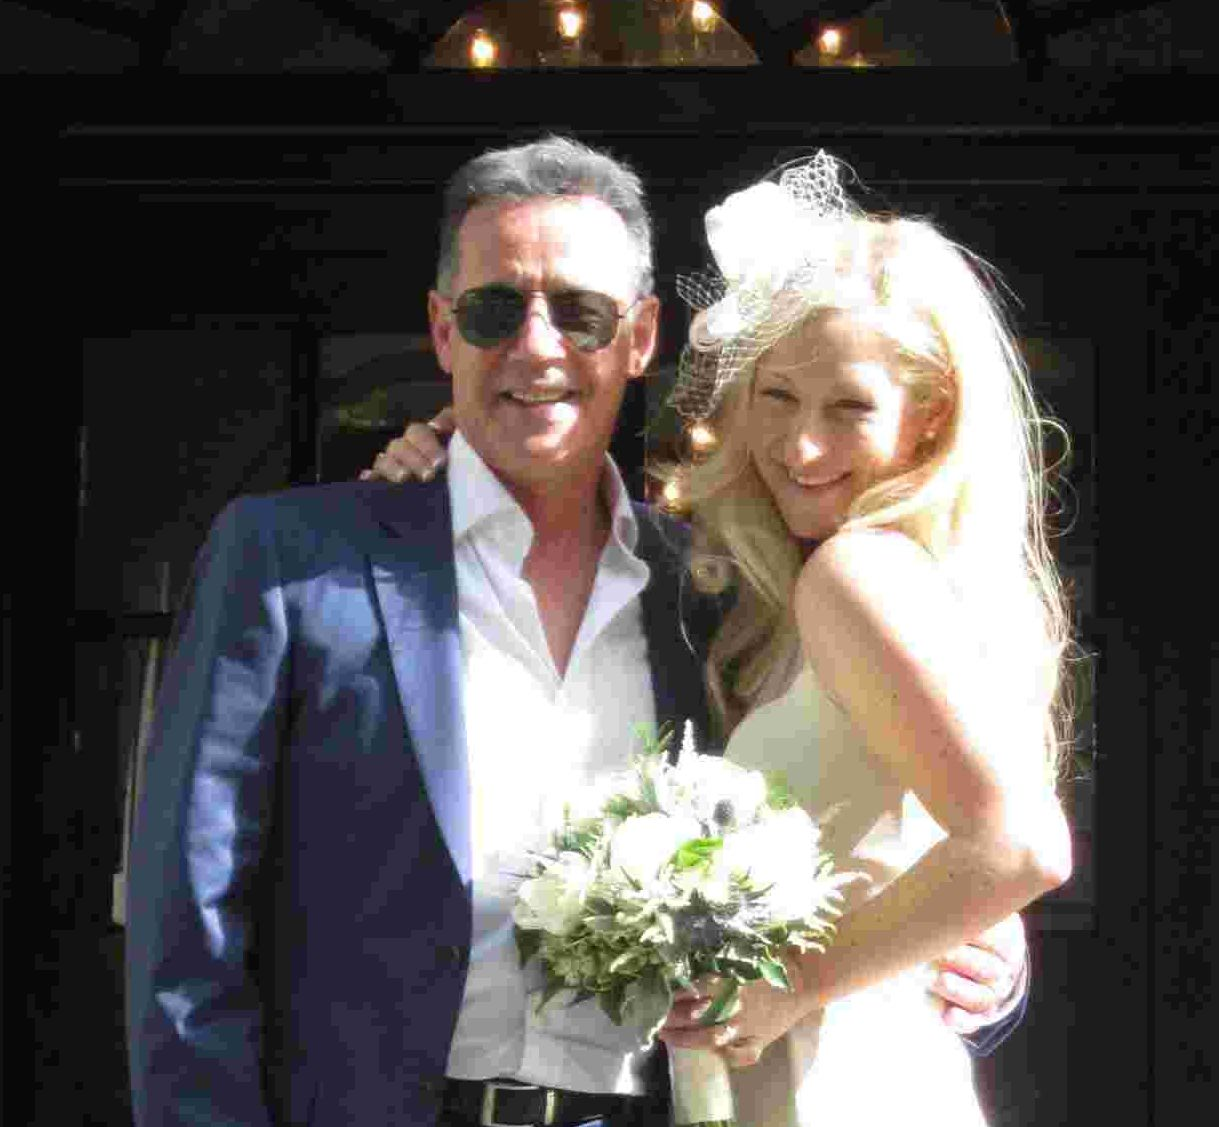 Falmouth charity worker weds to become Mrs Cowell